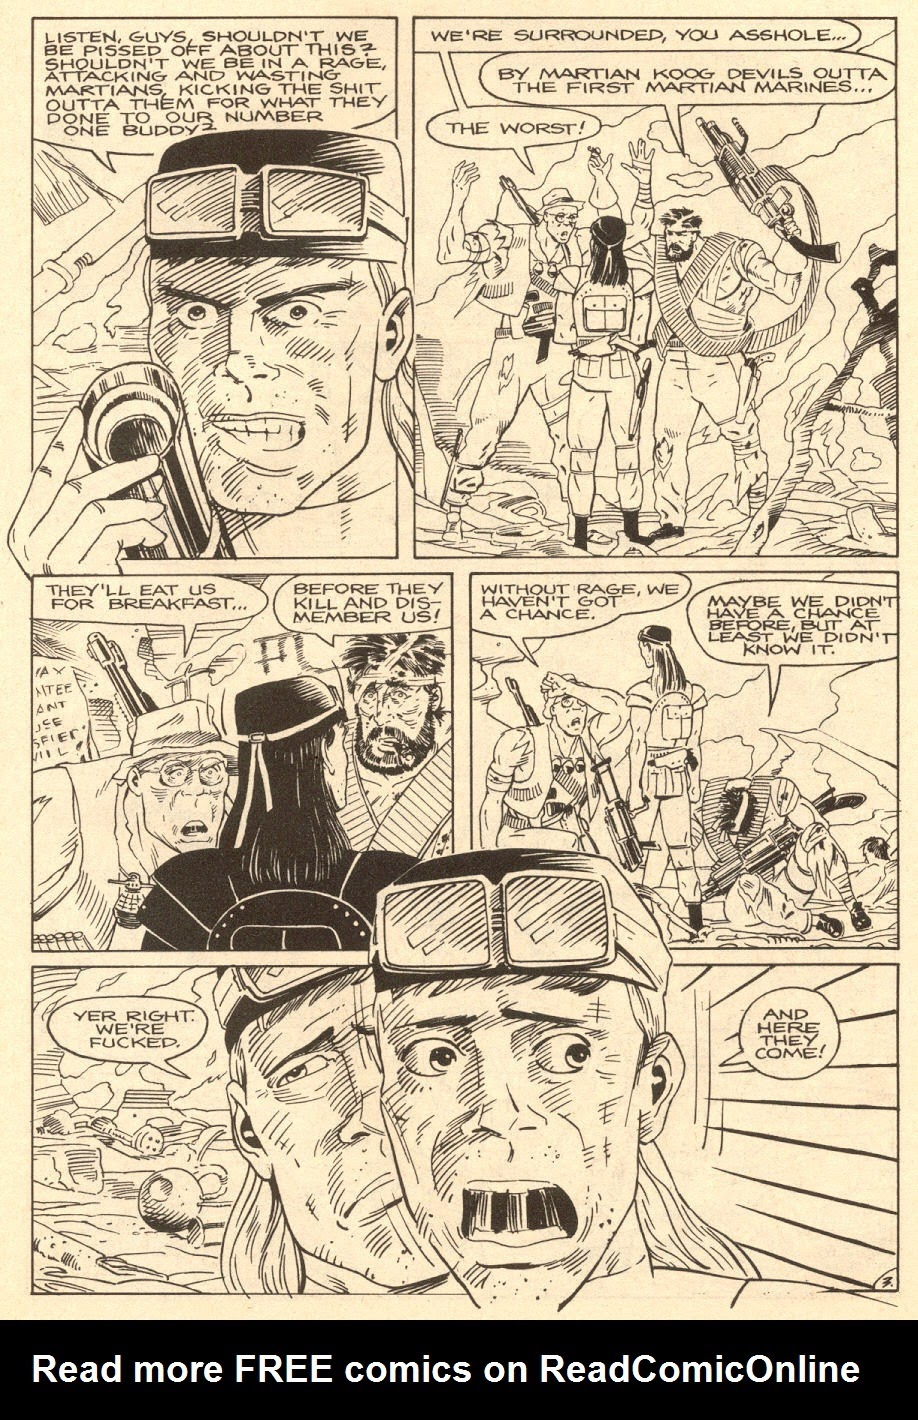 Commies from Mars: The Red Planet issue 6 - Page 28